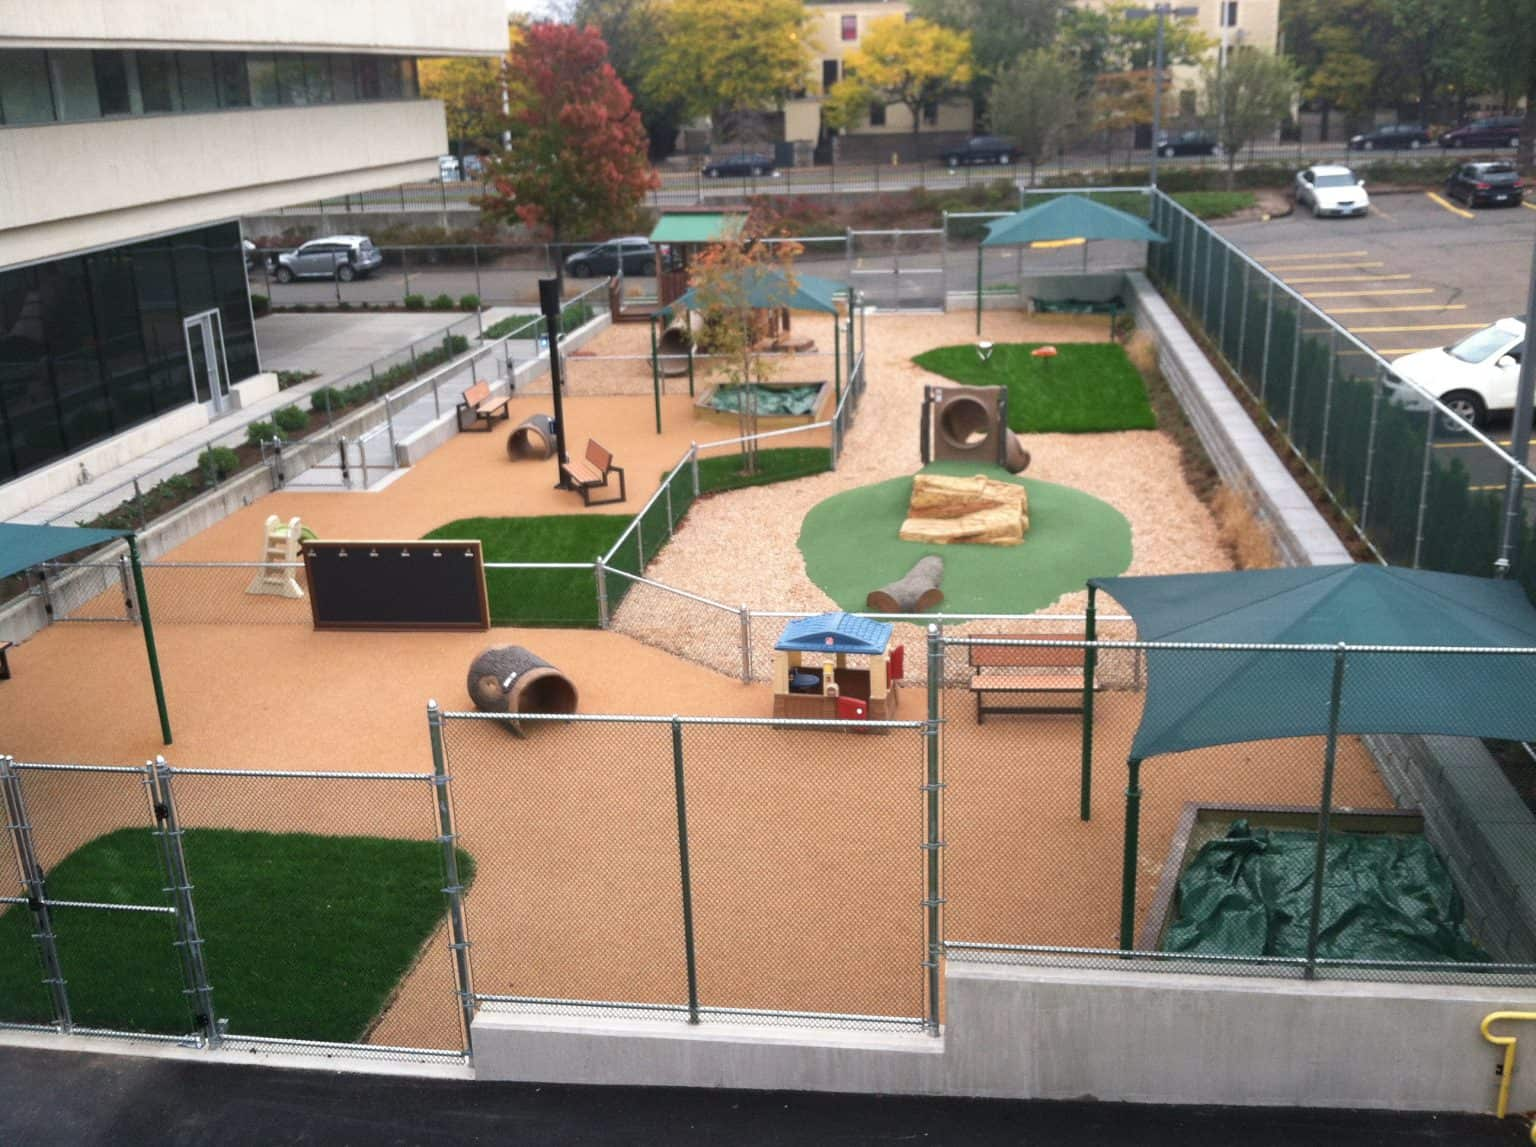 phyllis-bodel-daycare-playground-new-haven-ct_17504963984_o-1536x1147